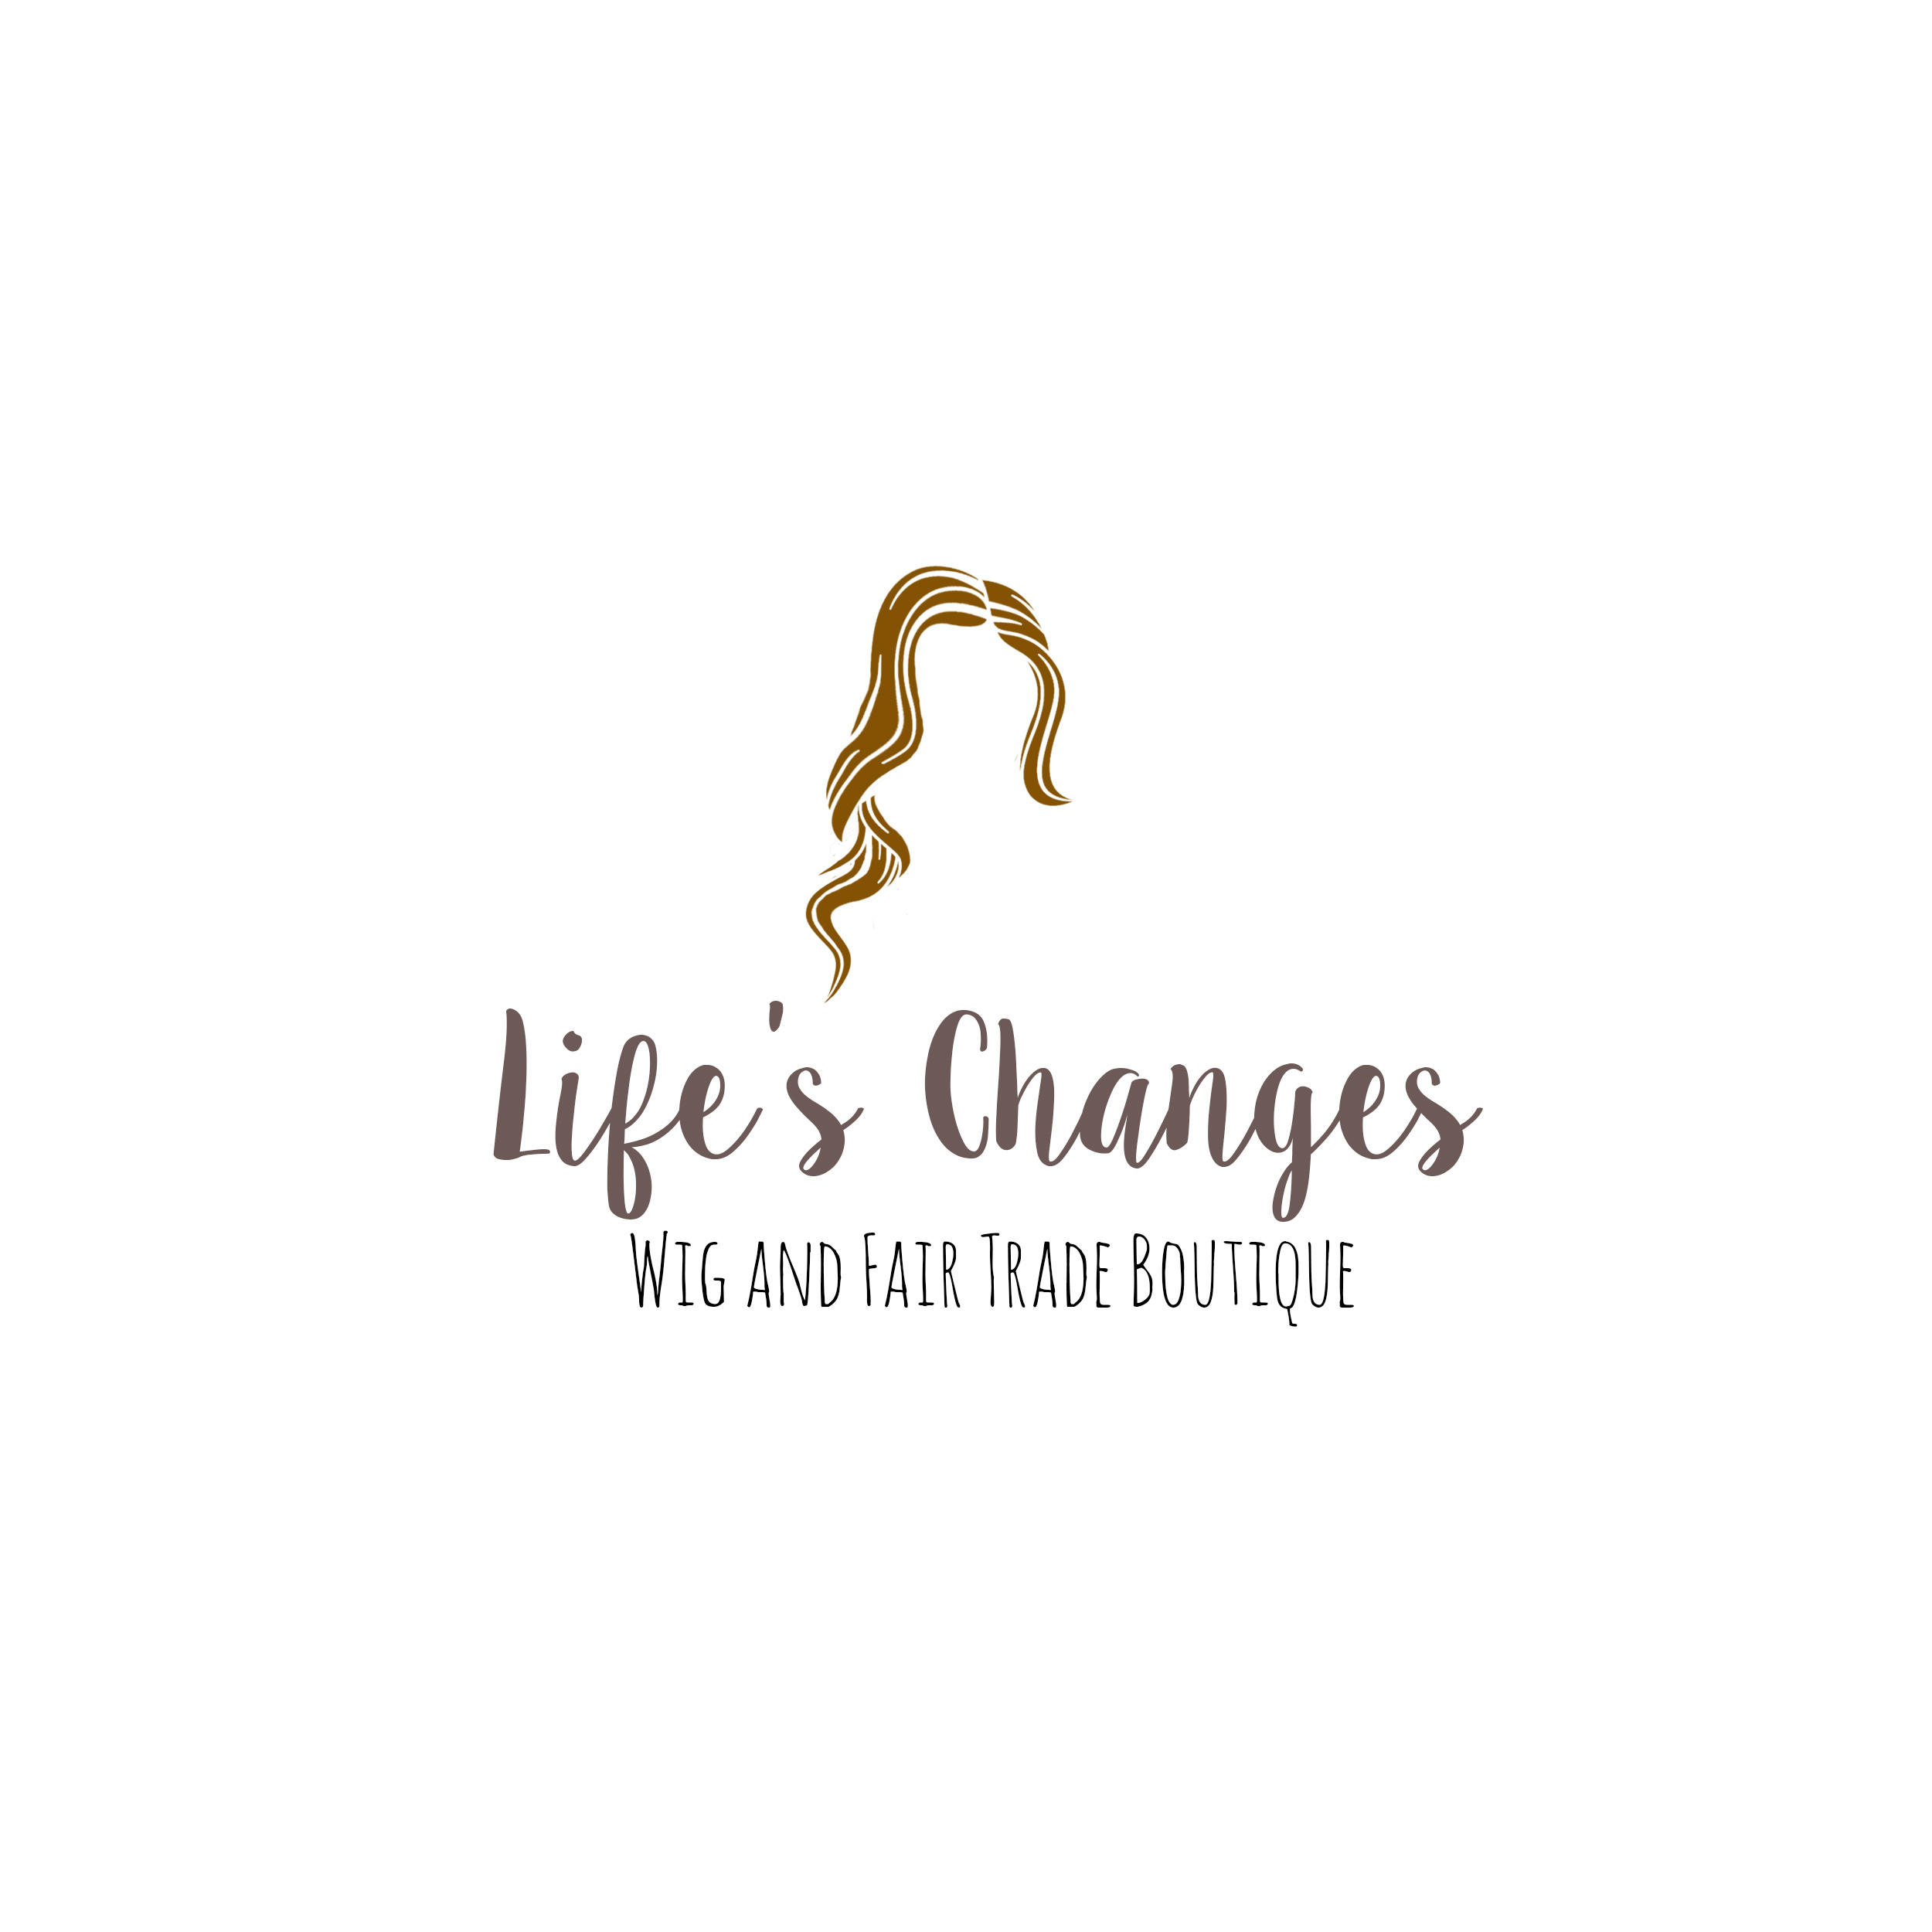 Life's Changes Palm Beach County. Inc